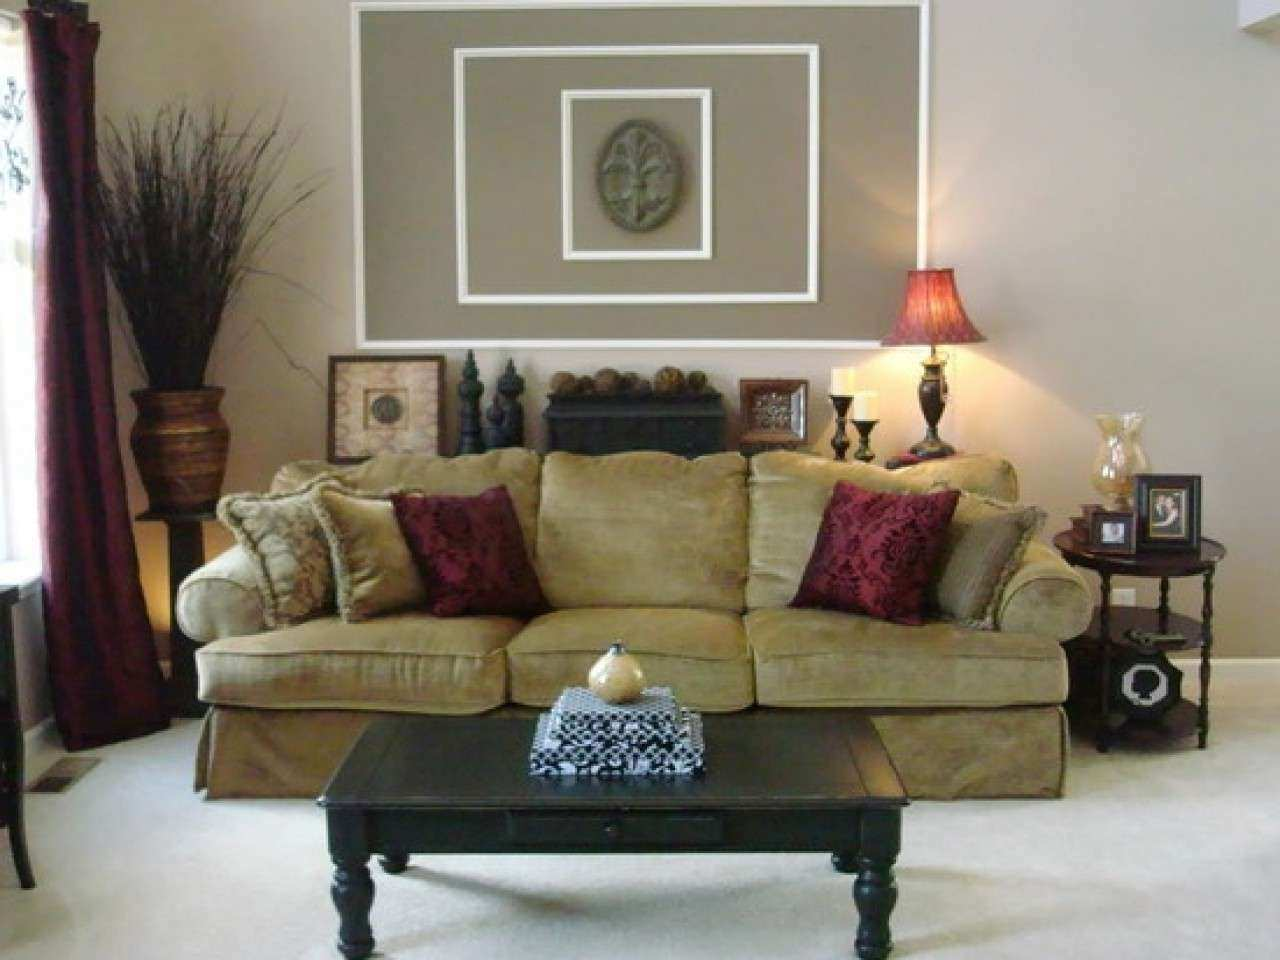 Free Download Image Luxury Large Wall Decorations Living Room 650 488 Large Wall Decorations